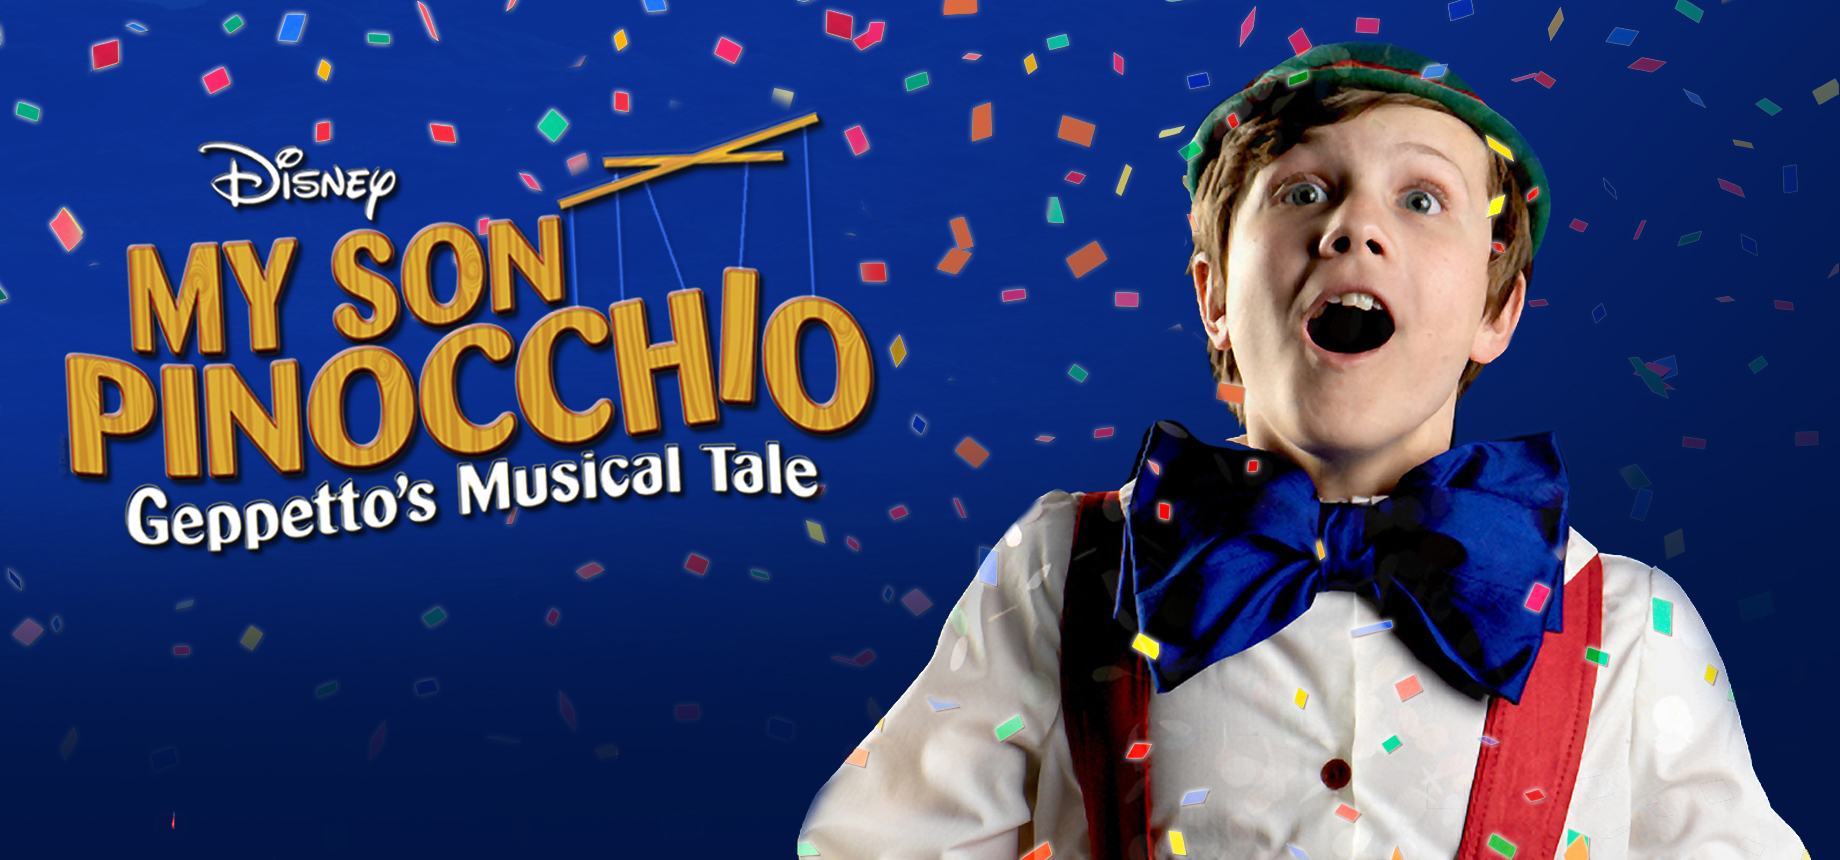 Disney's My Son Pinocchio: Geppetto's Musical Tale   Music